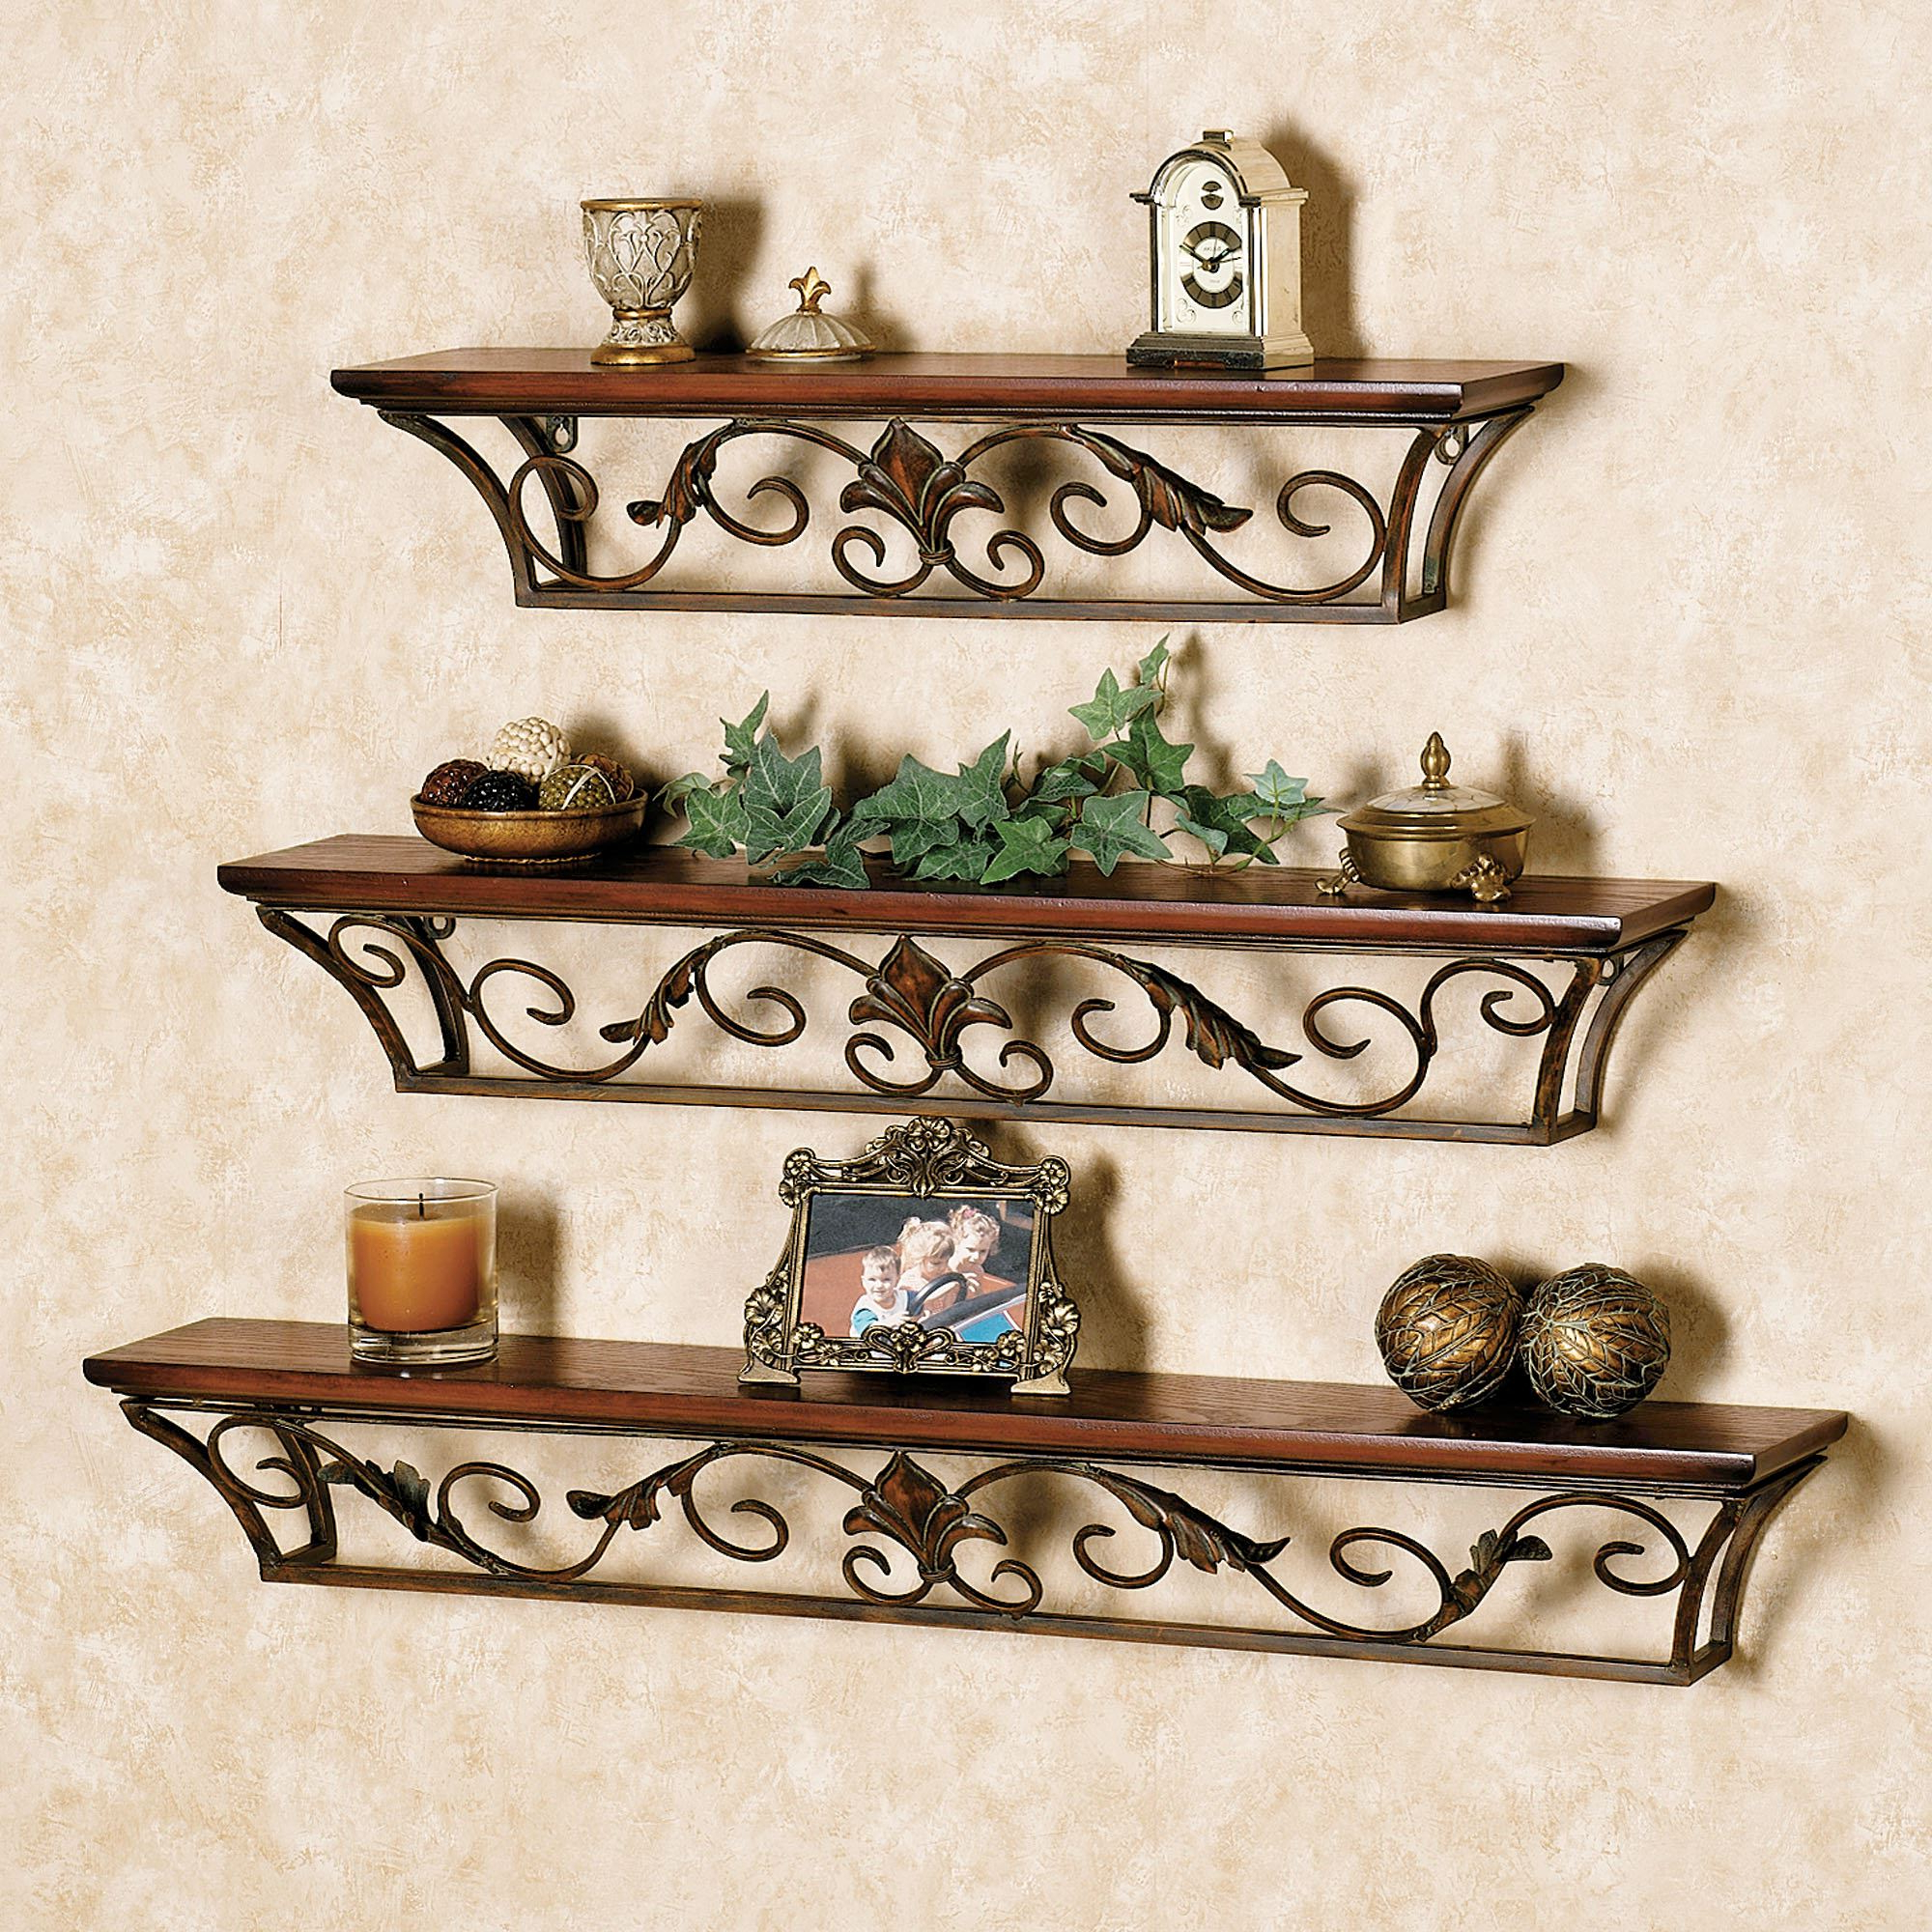 Ornamental Wood And Metal Scroll Wall Decor Pertaining To Most Popular Dagian Wall Shelves (Gallery 15 of 20)